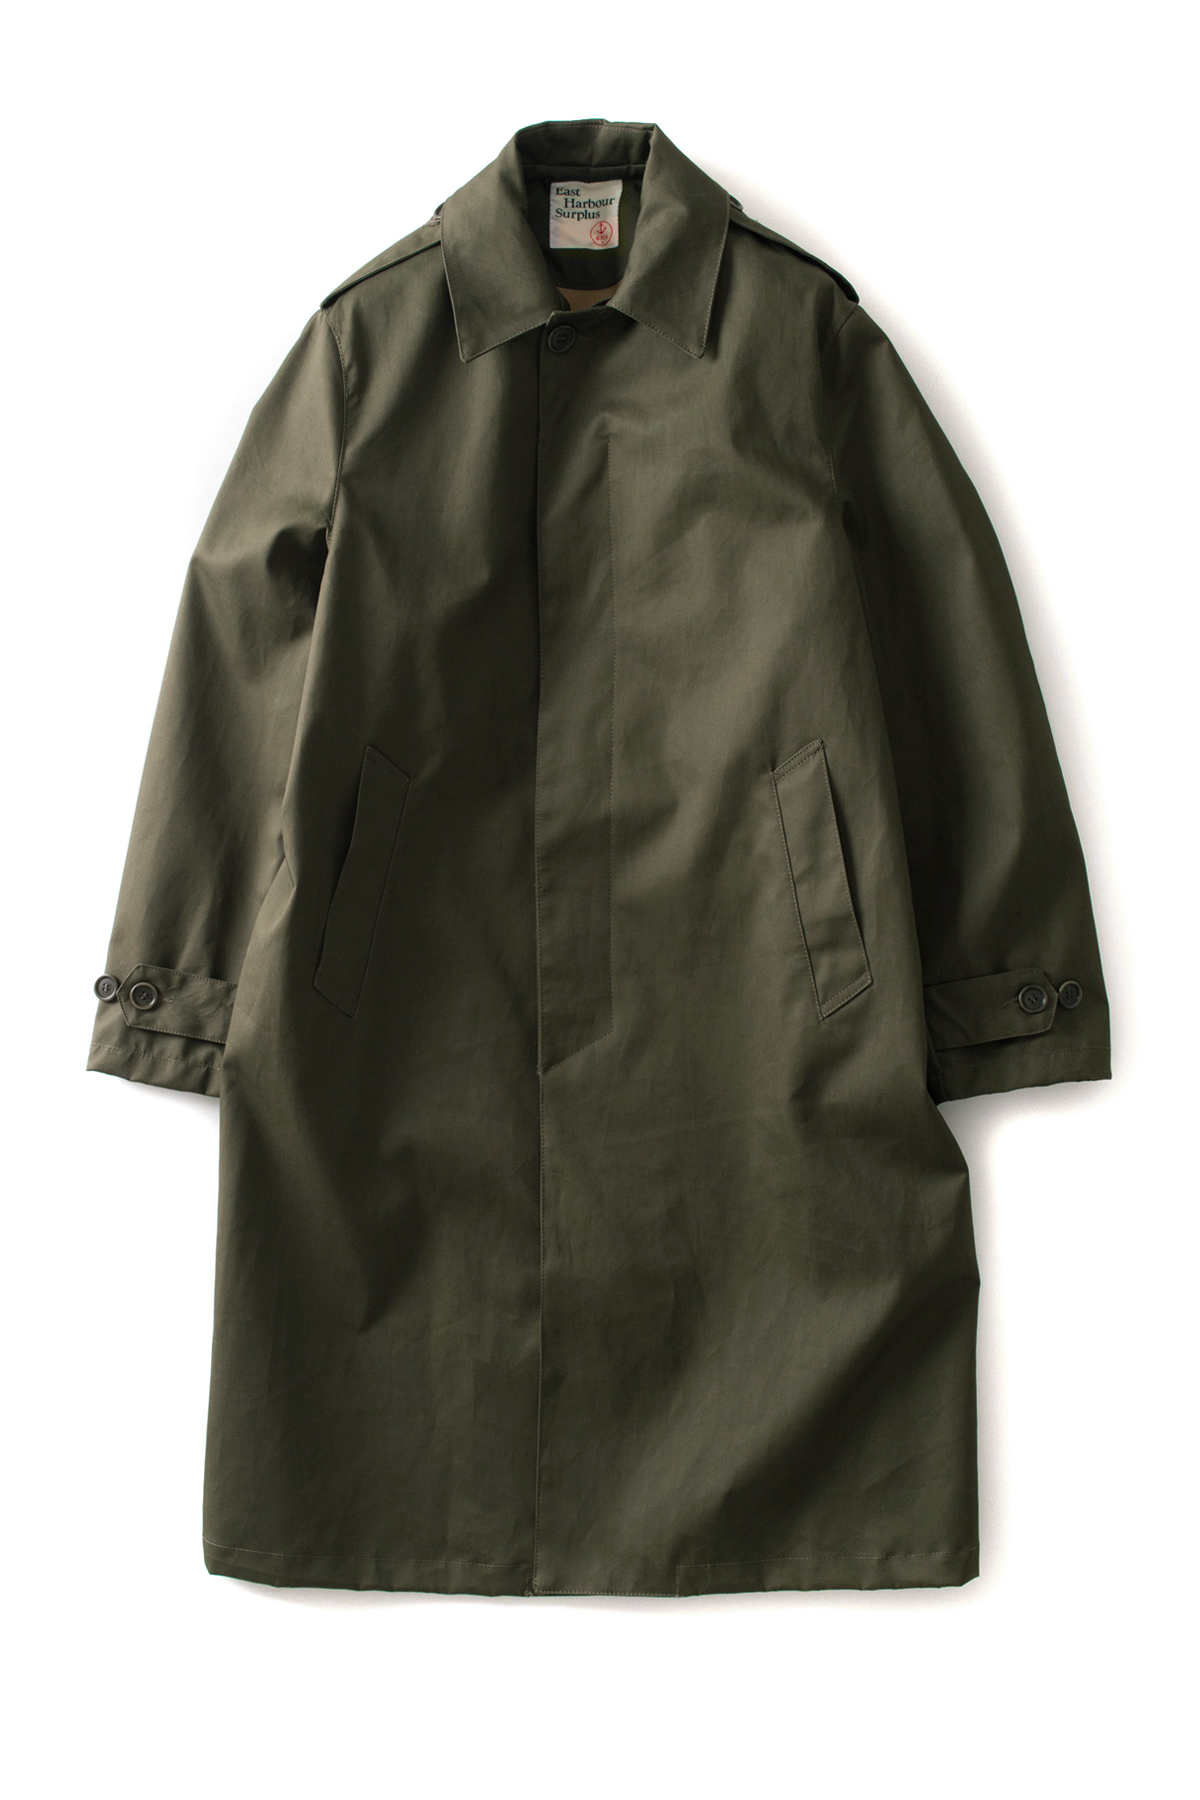 East Harbour Surplus : Fabian Trench (Olive)